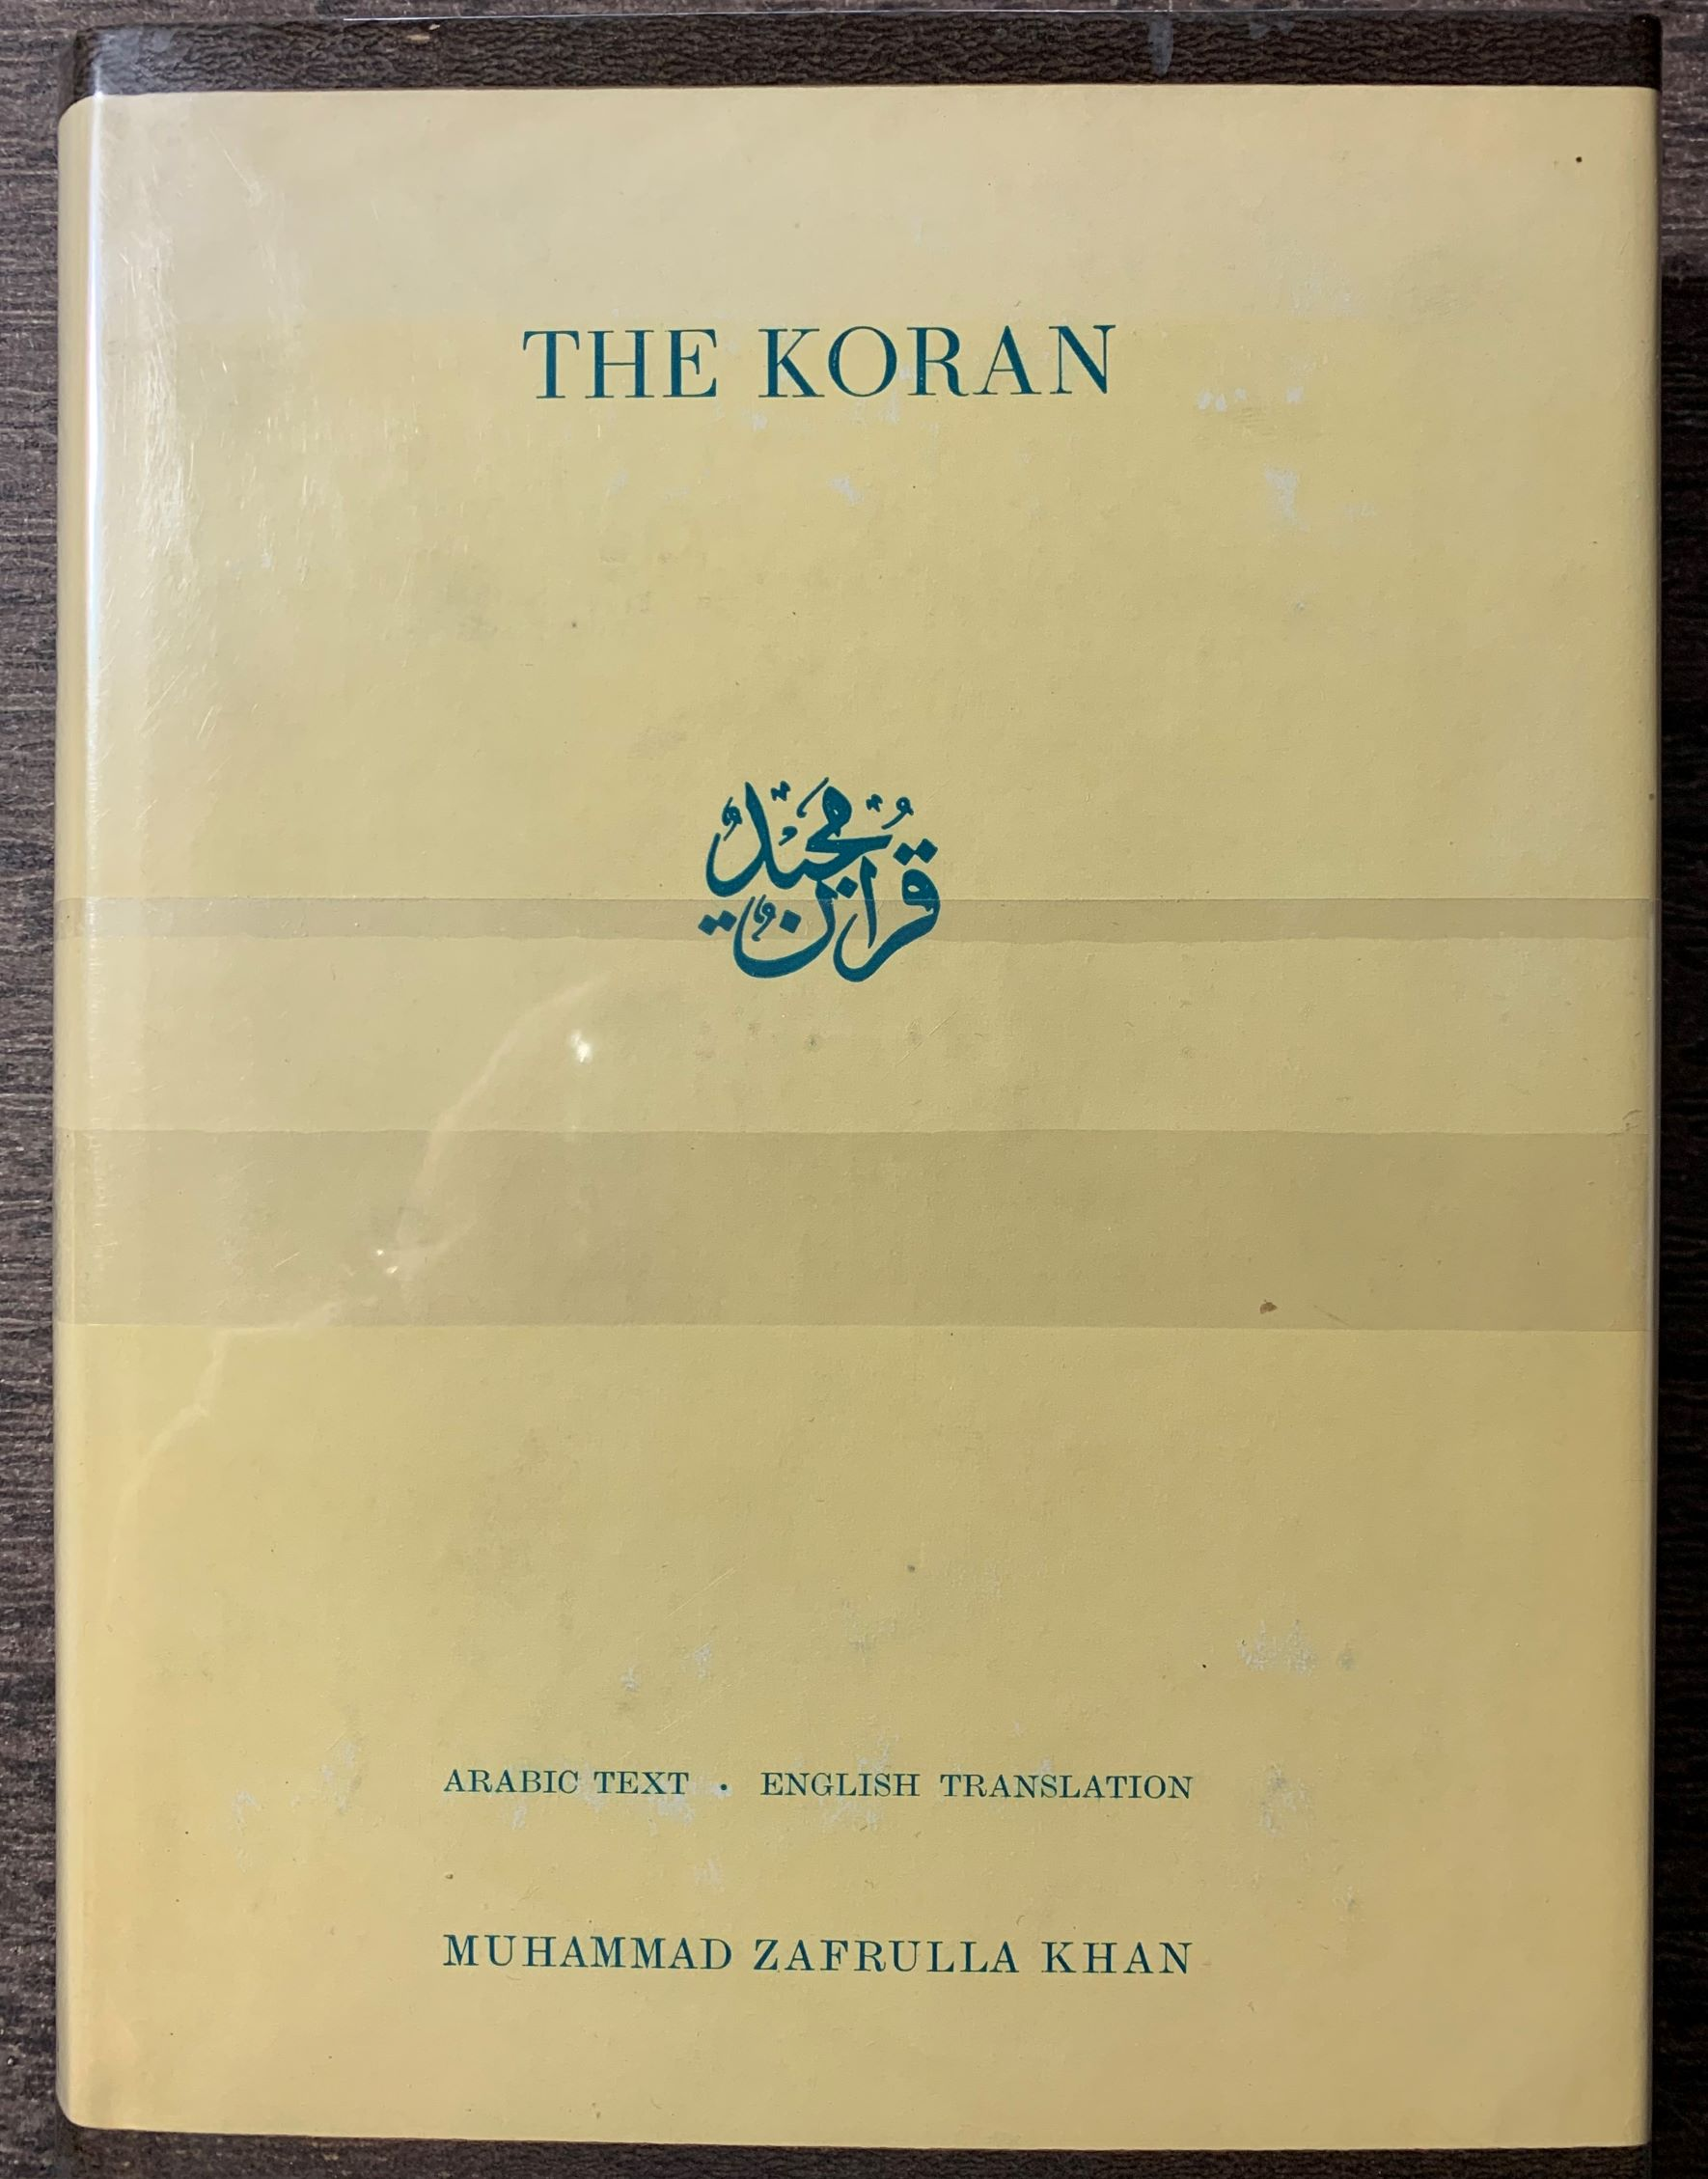 Image for The Koran. The Eternal Revelation vouchsafed to Muhammad, The Seal of the Prophets.  Arabic text with a new translation by Muhammad Zafrulla Khan.